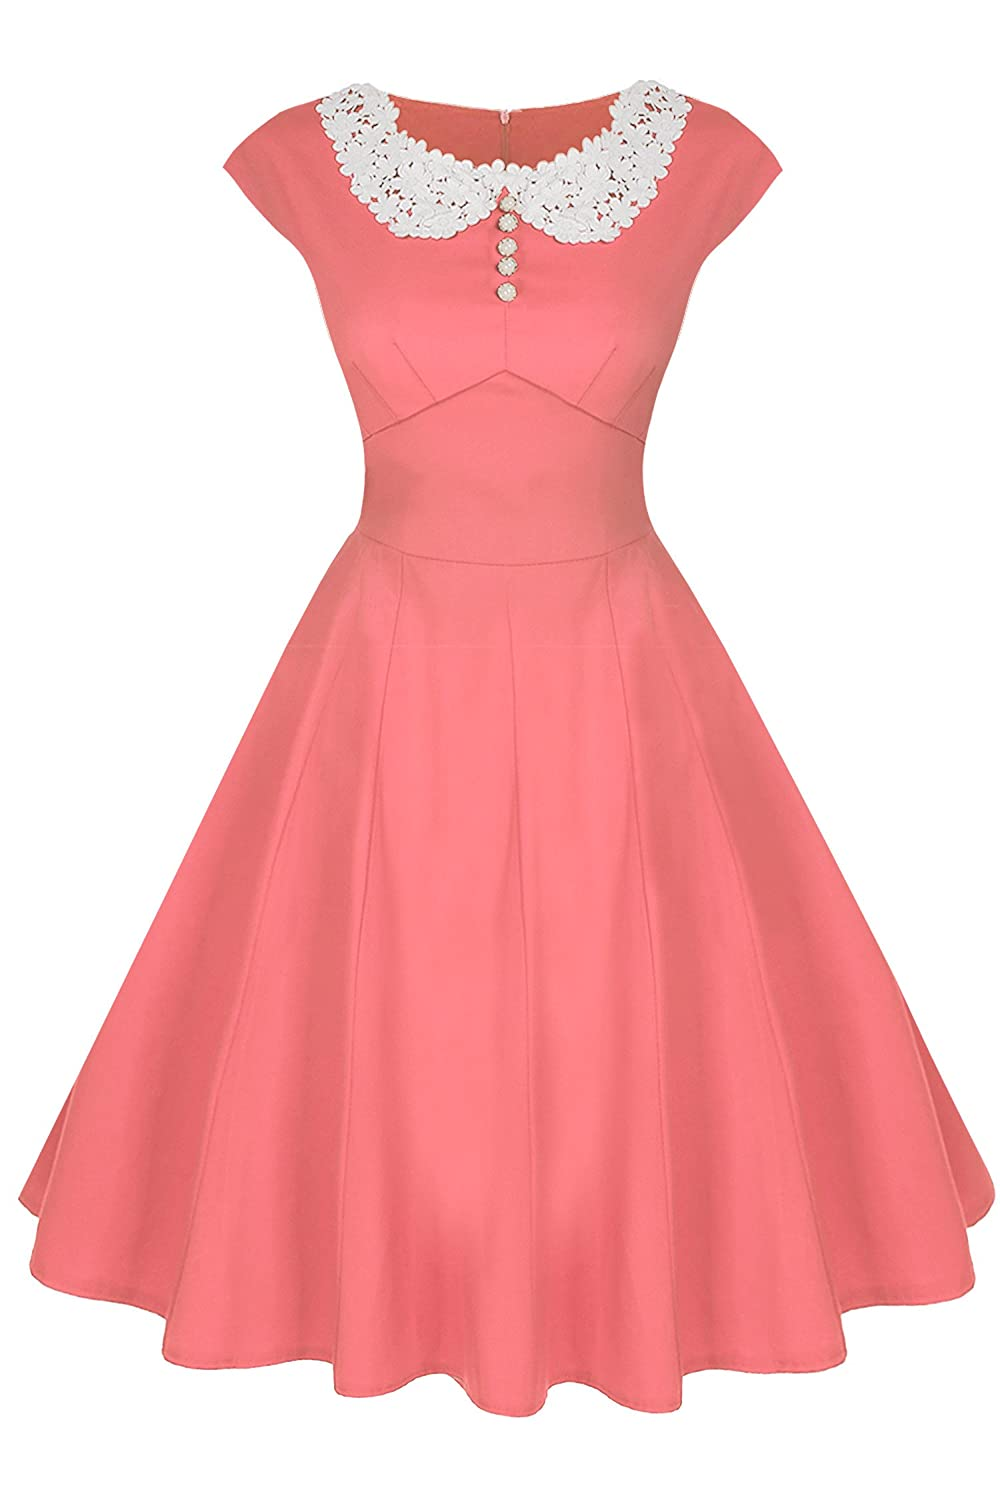 500 Vintage Style Dresses for Sale | Vintage Inspired Dresses Audrey Hepburn Style 1940s Rockabilly Evening Dress $32.99 AT vintagedancer.com